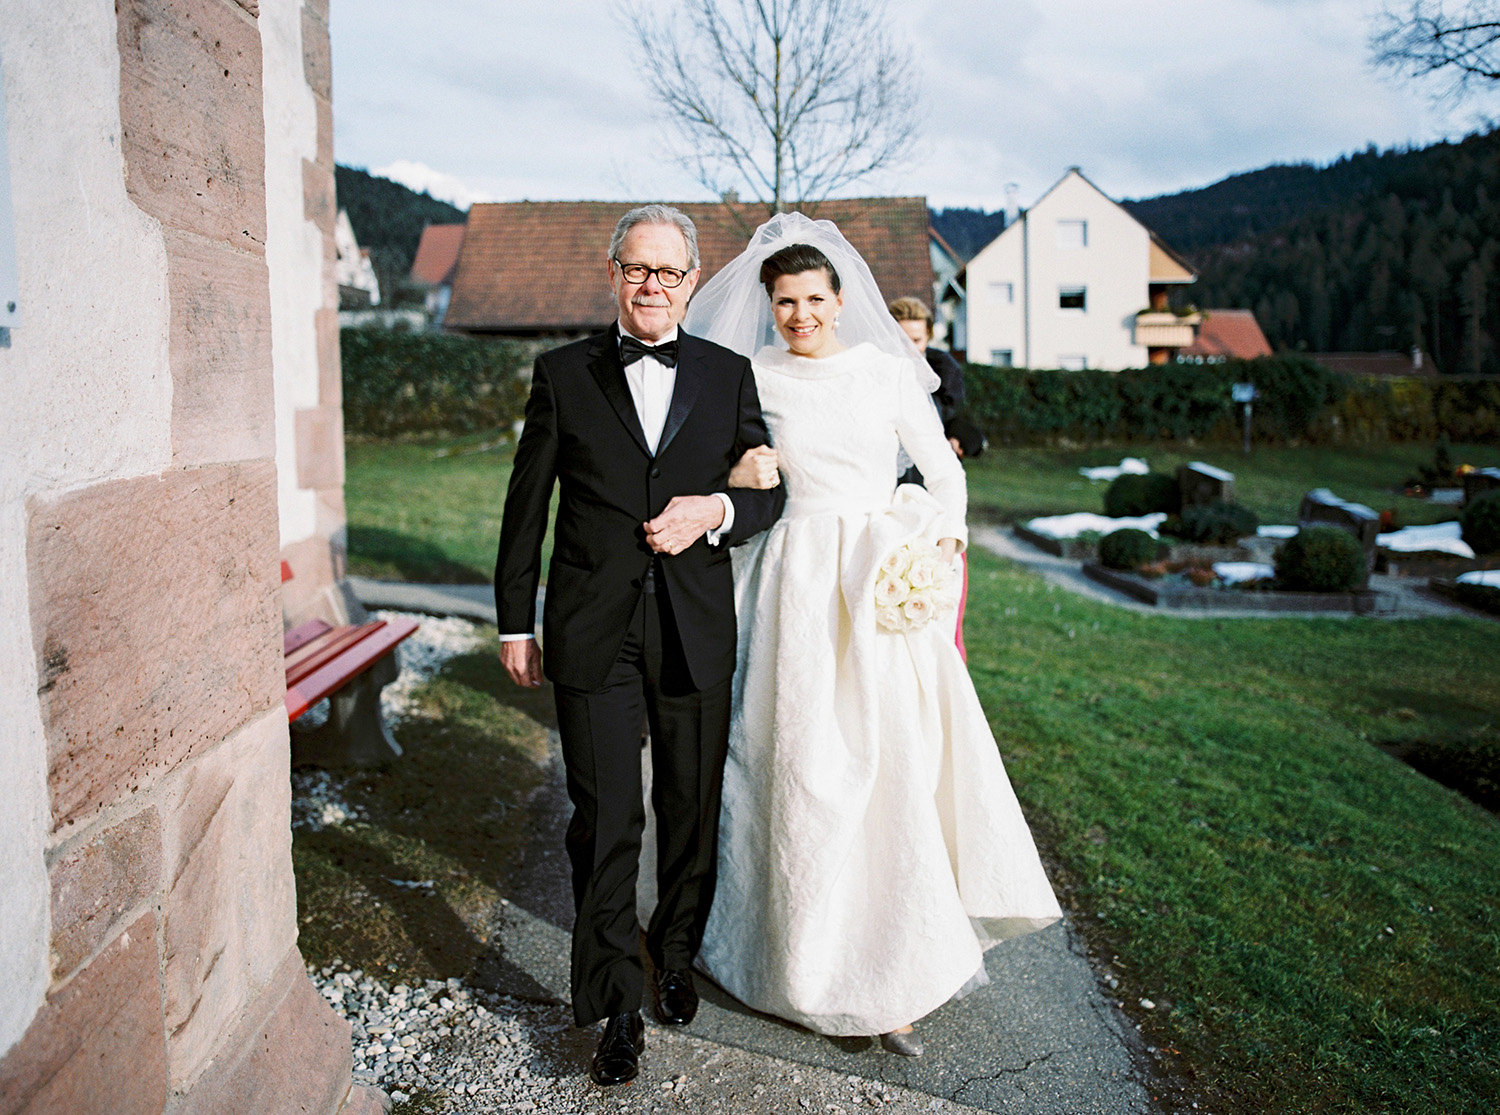 Fotograf Konstanz - Hochzeit Stephanie Stefan Baiersbronn Bareiss Elmar Feuerbacher Photography 37 - Noble winter wedding in Baiersbronn in Bareiss  - 110 -